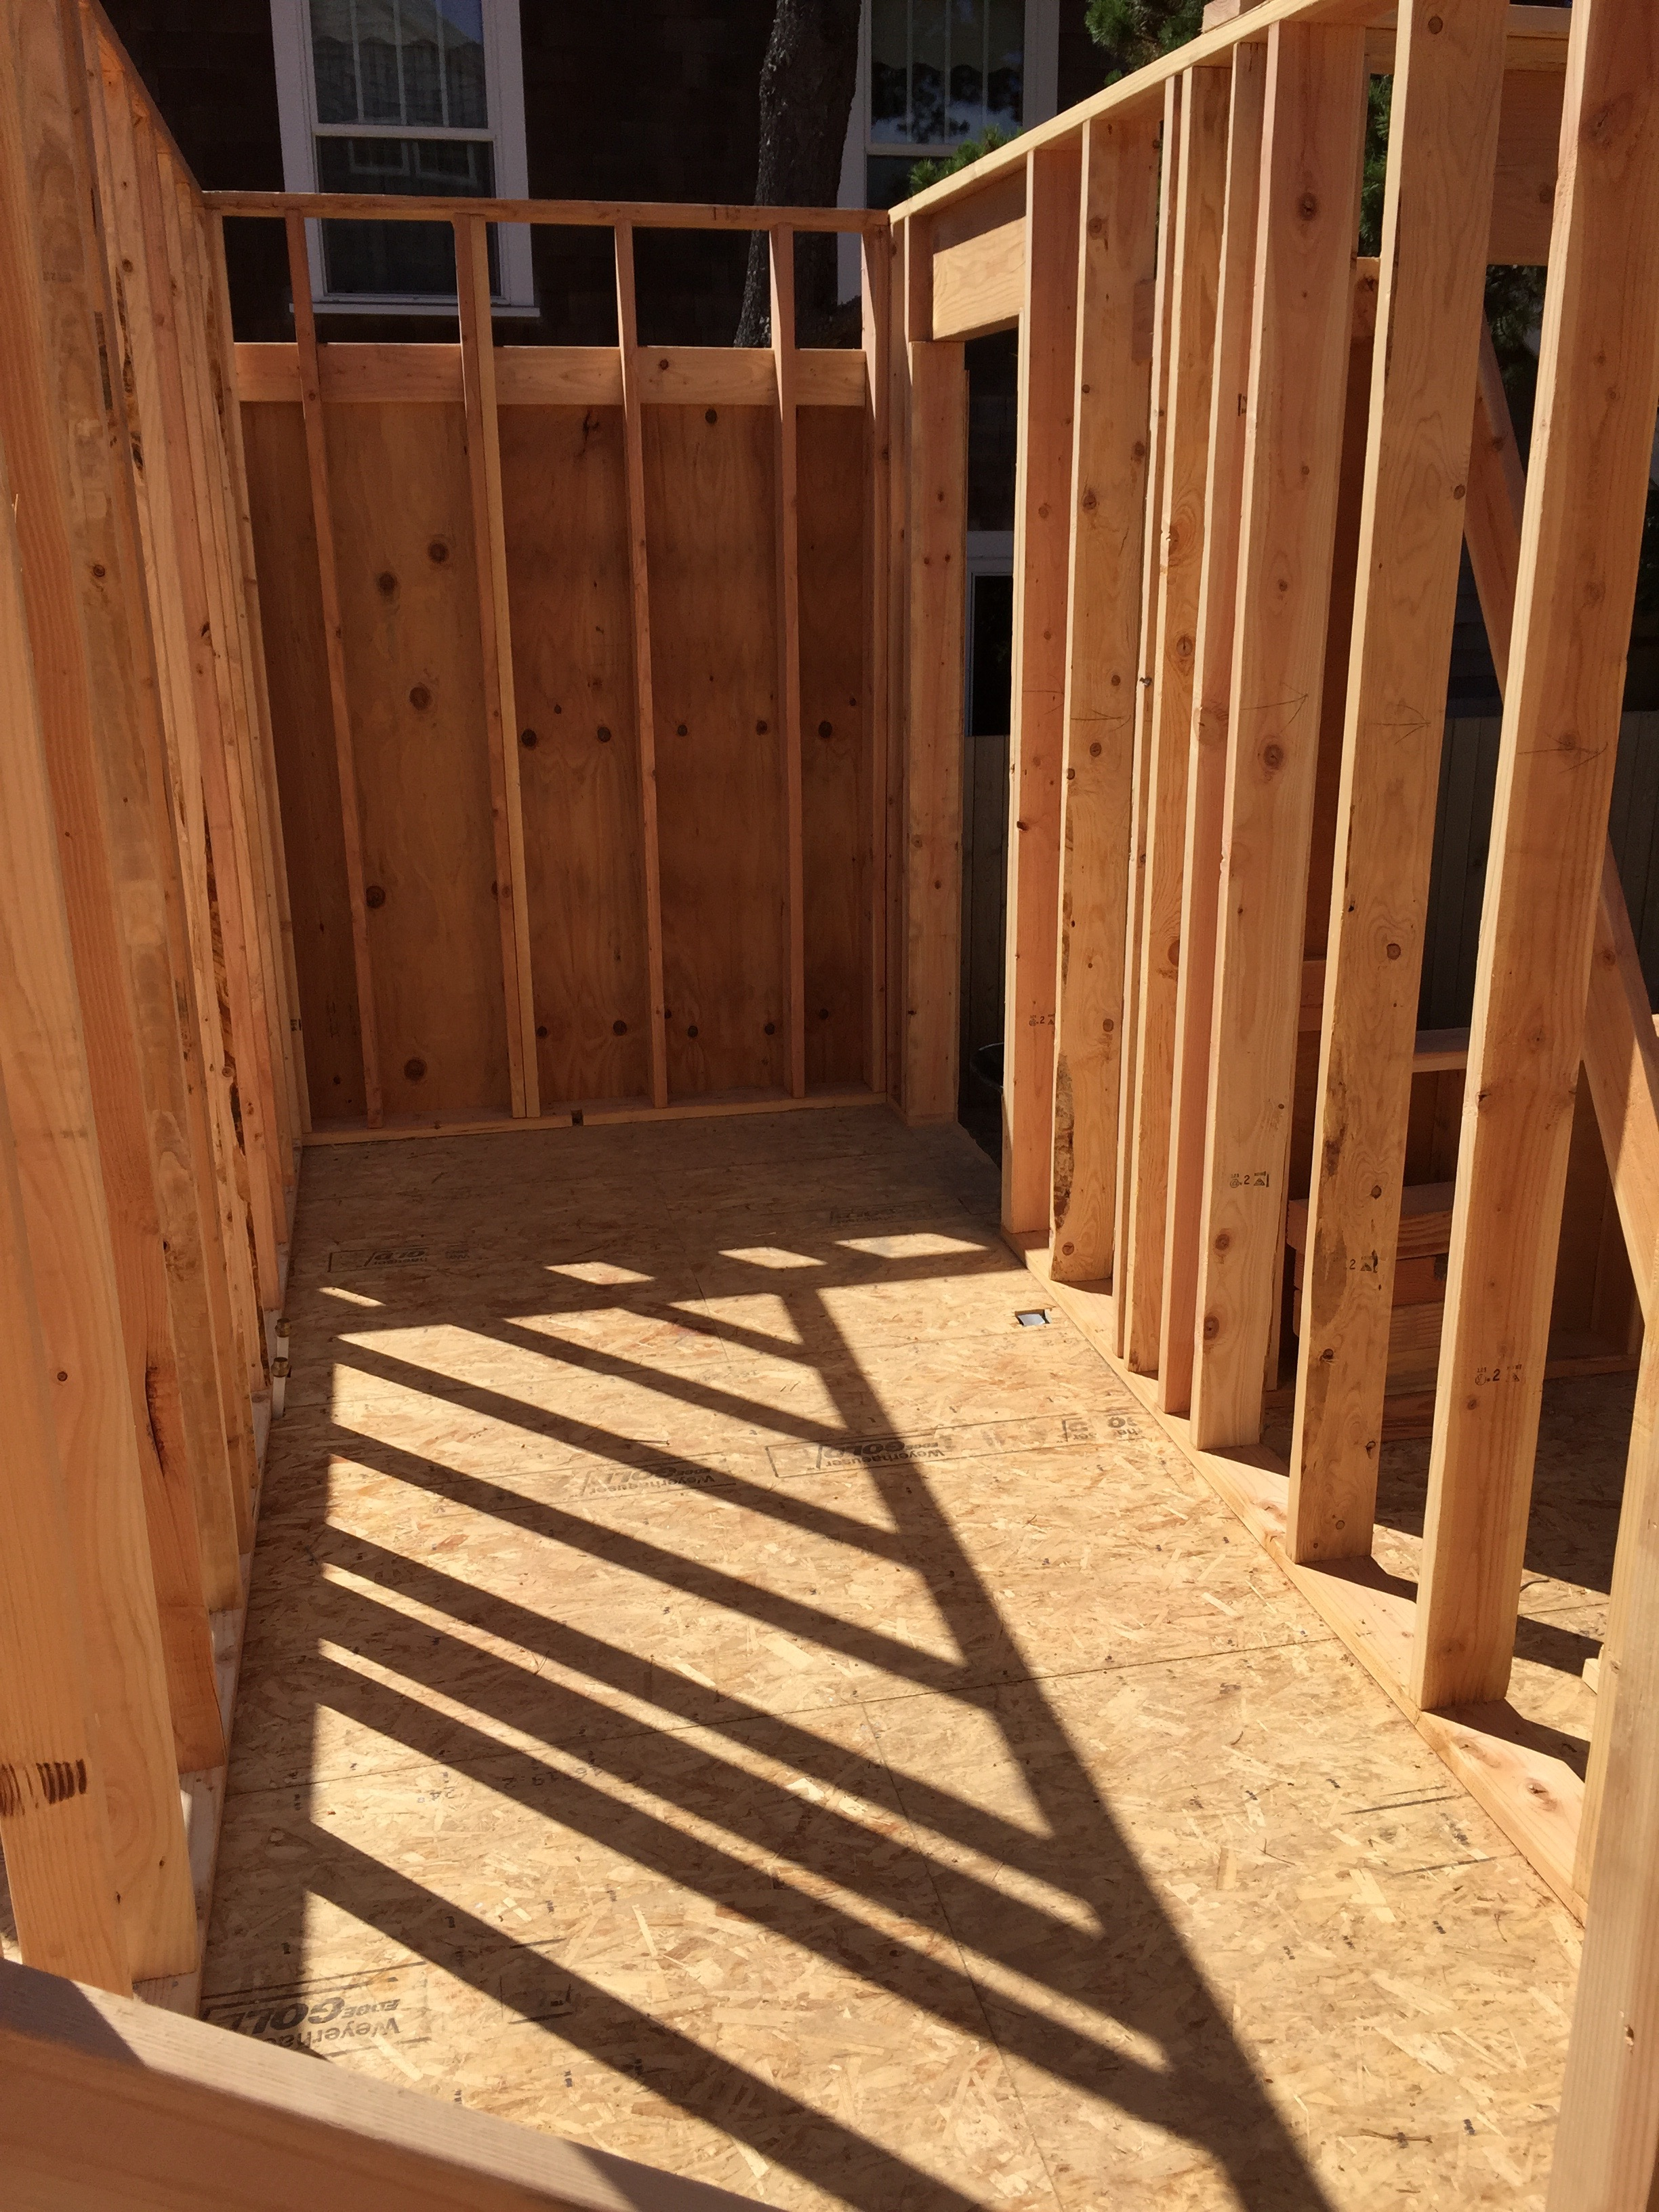 This is the utility / mudroom